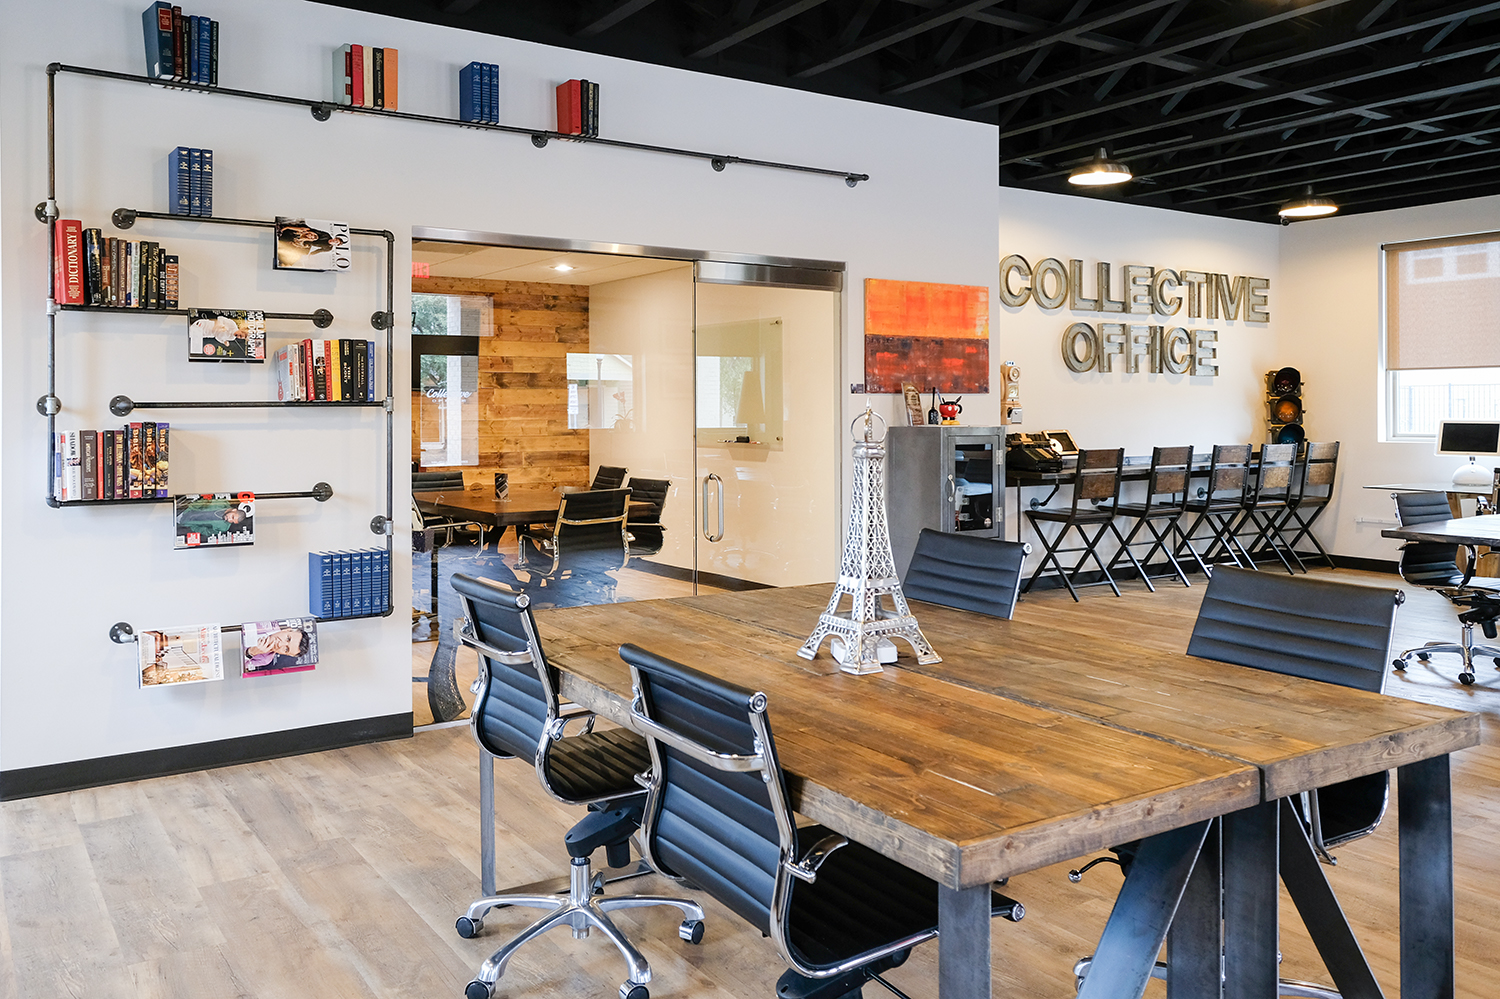 Collective Office Coworking Dallas Area - Coppell, Southlake, Grapevine, Las Colinas